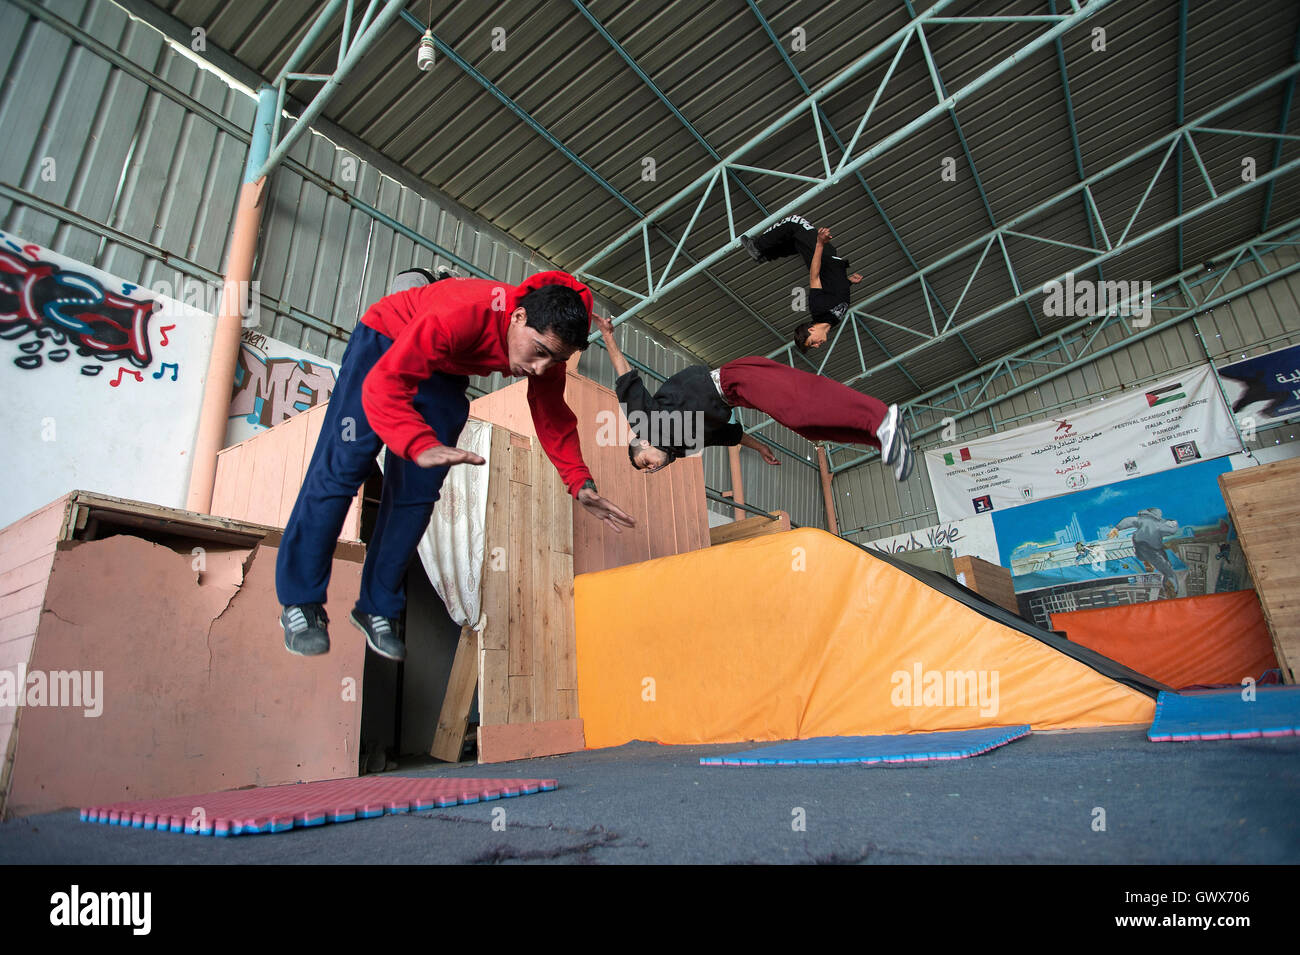 '3 Run Gaza' in training at their base in Beit Hanoun, Gaza Strip. Stock Photo